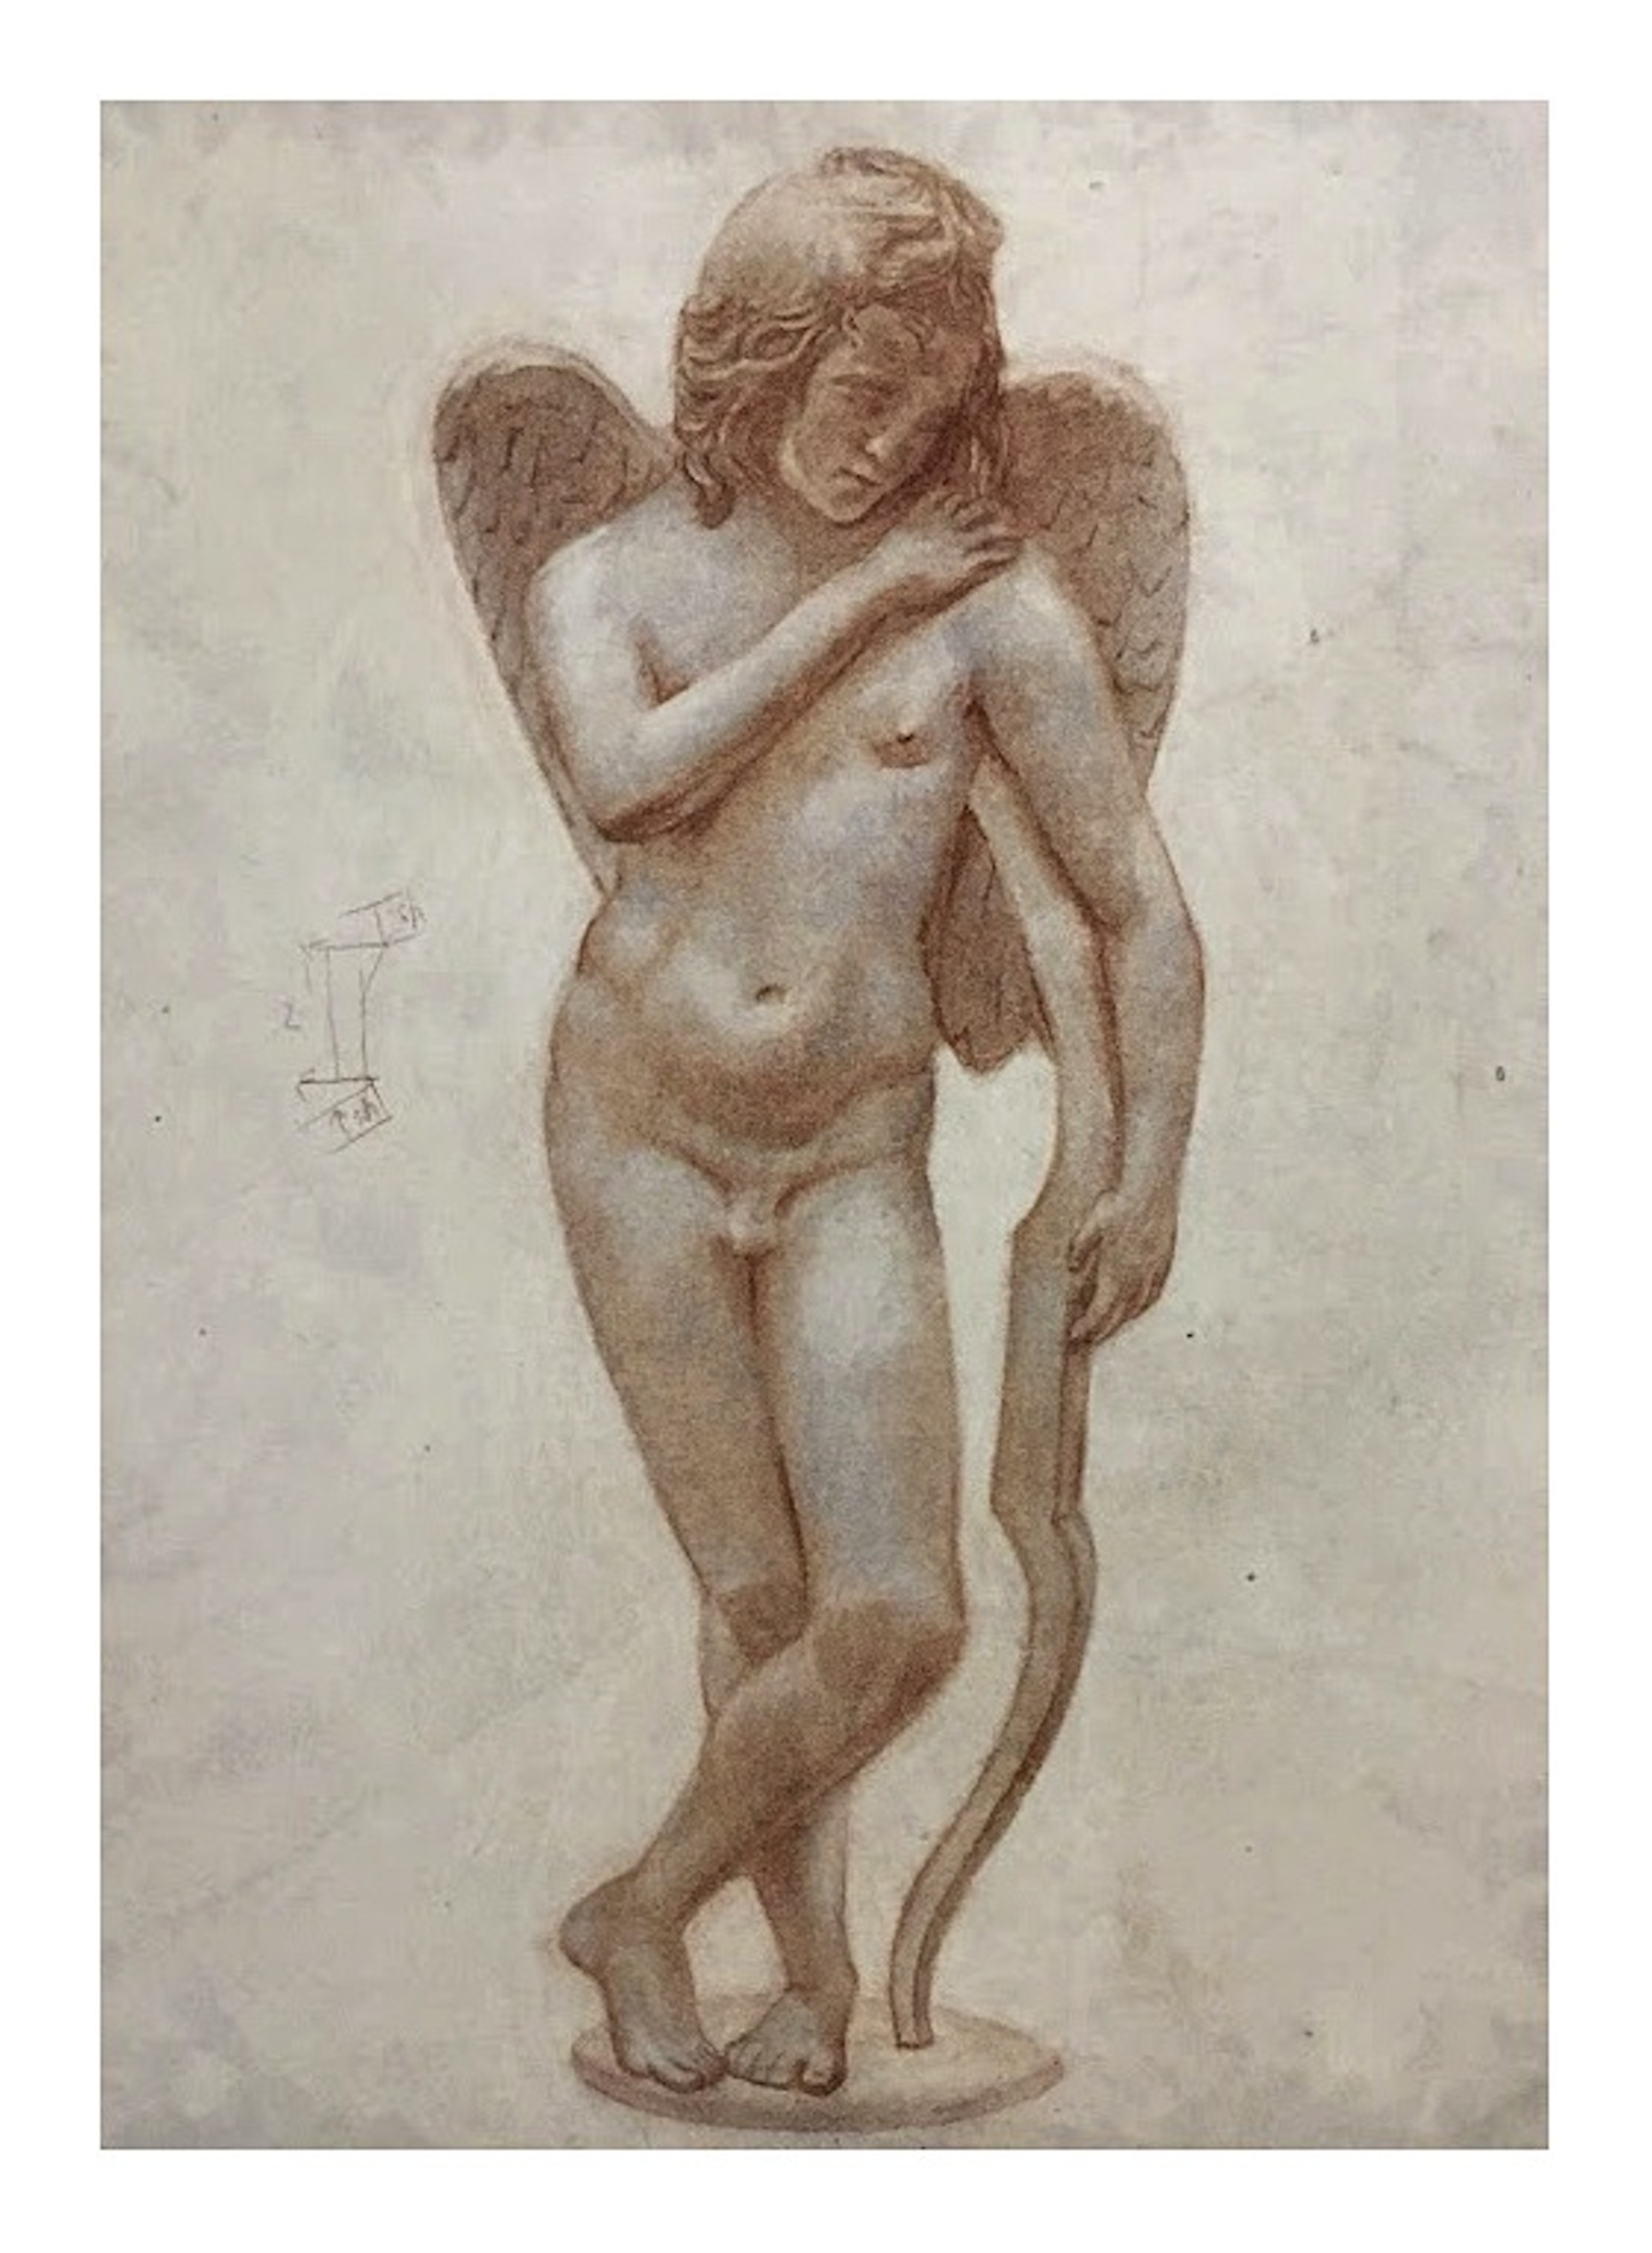 Copy of the sculpture Cupido con l'arco (Roman art reinterpreted by Innocenzo Spinazzi, 1726-1798), soft pastel on toned paper, 40 x 30 cm, 2018